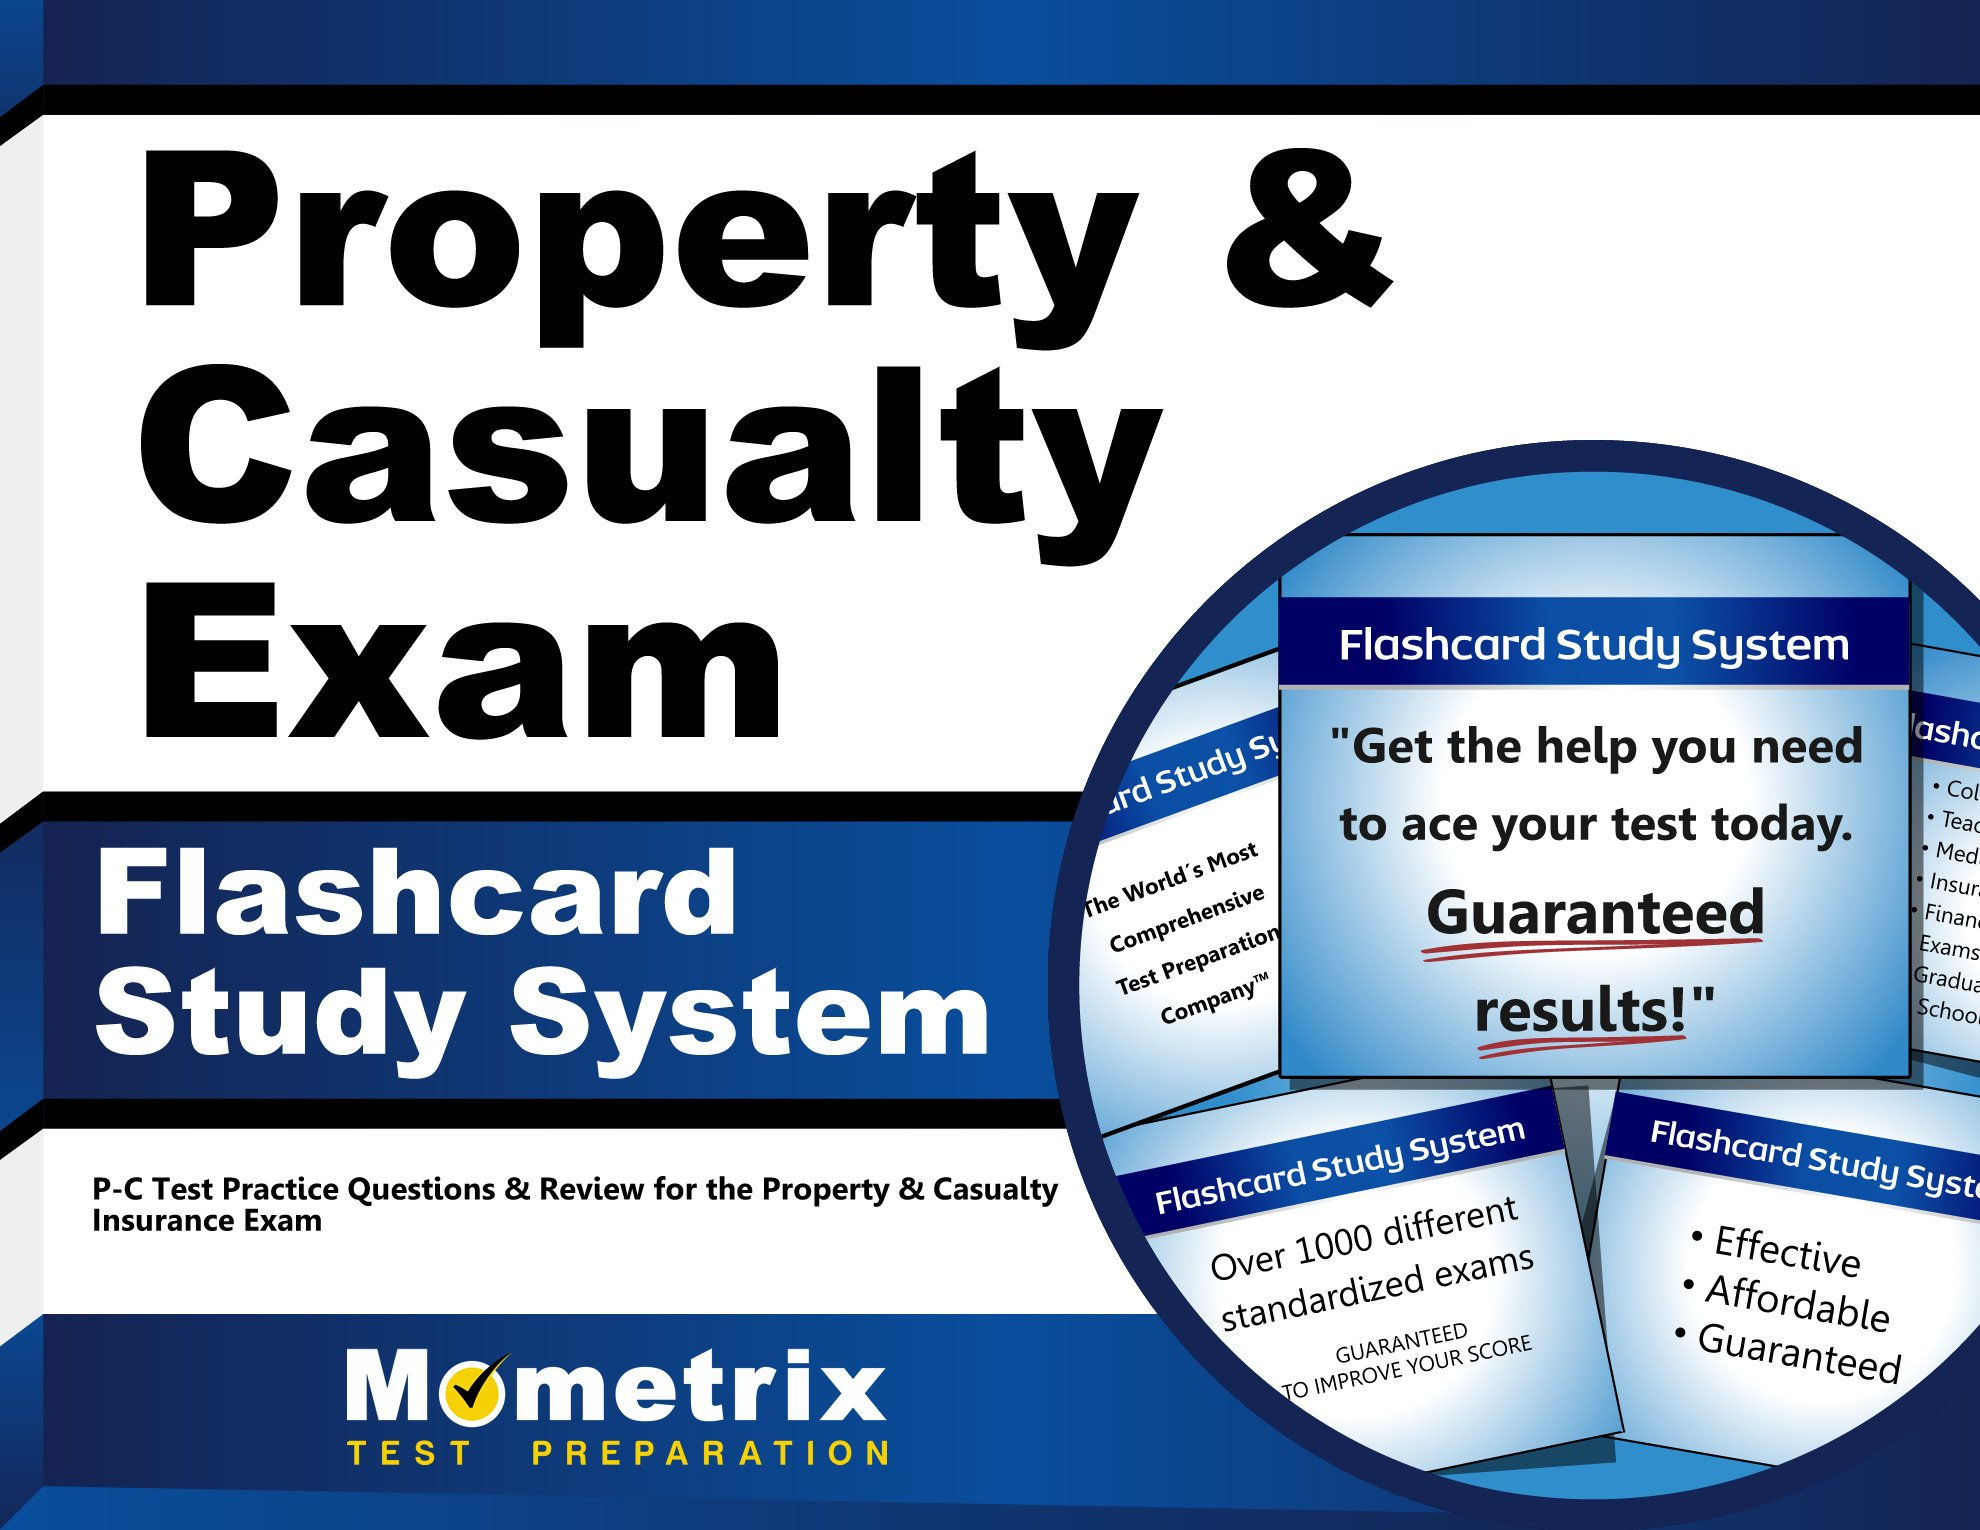 Buy Property & Casualty Exam Flashcard Study System: P-C